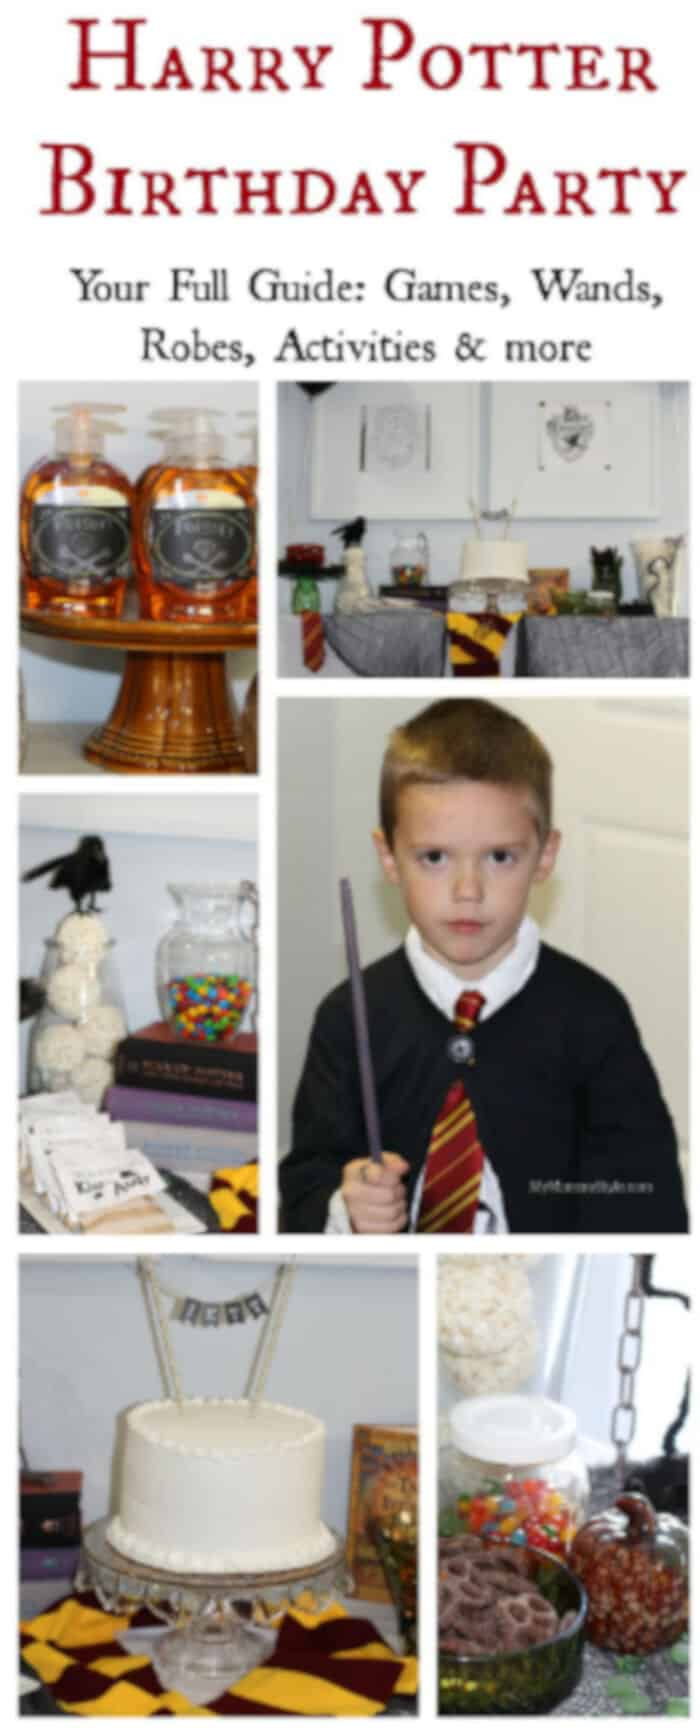 Harry Potter Birthday Party by My Mommy Style